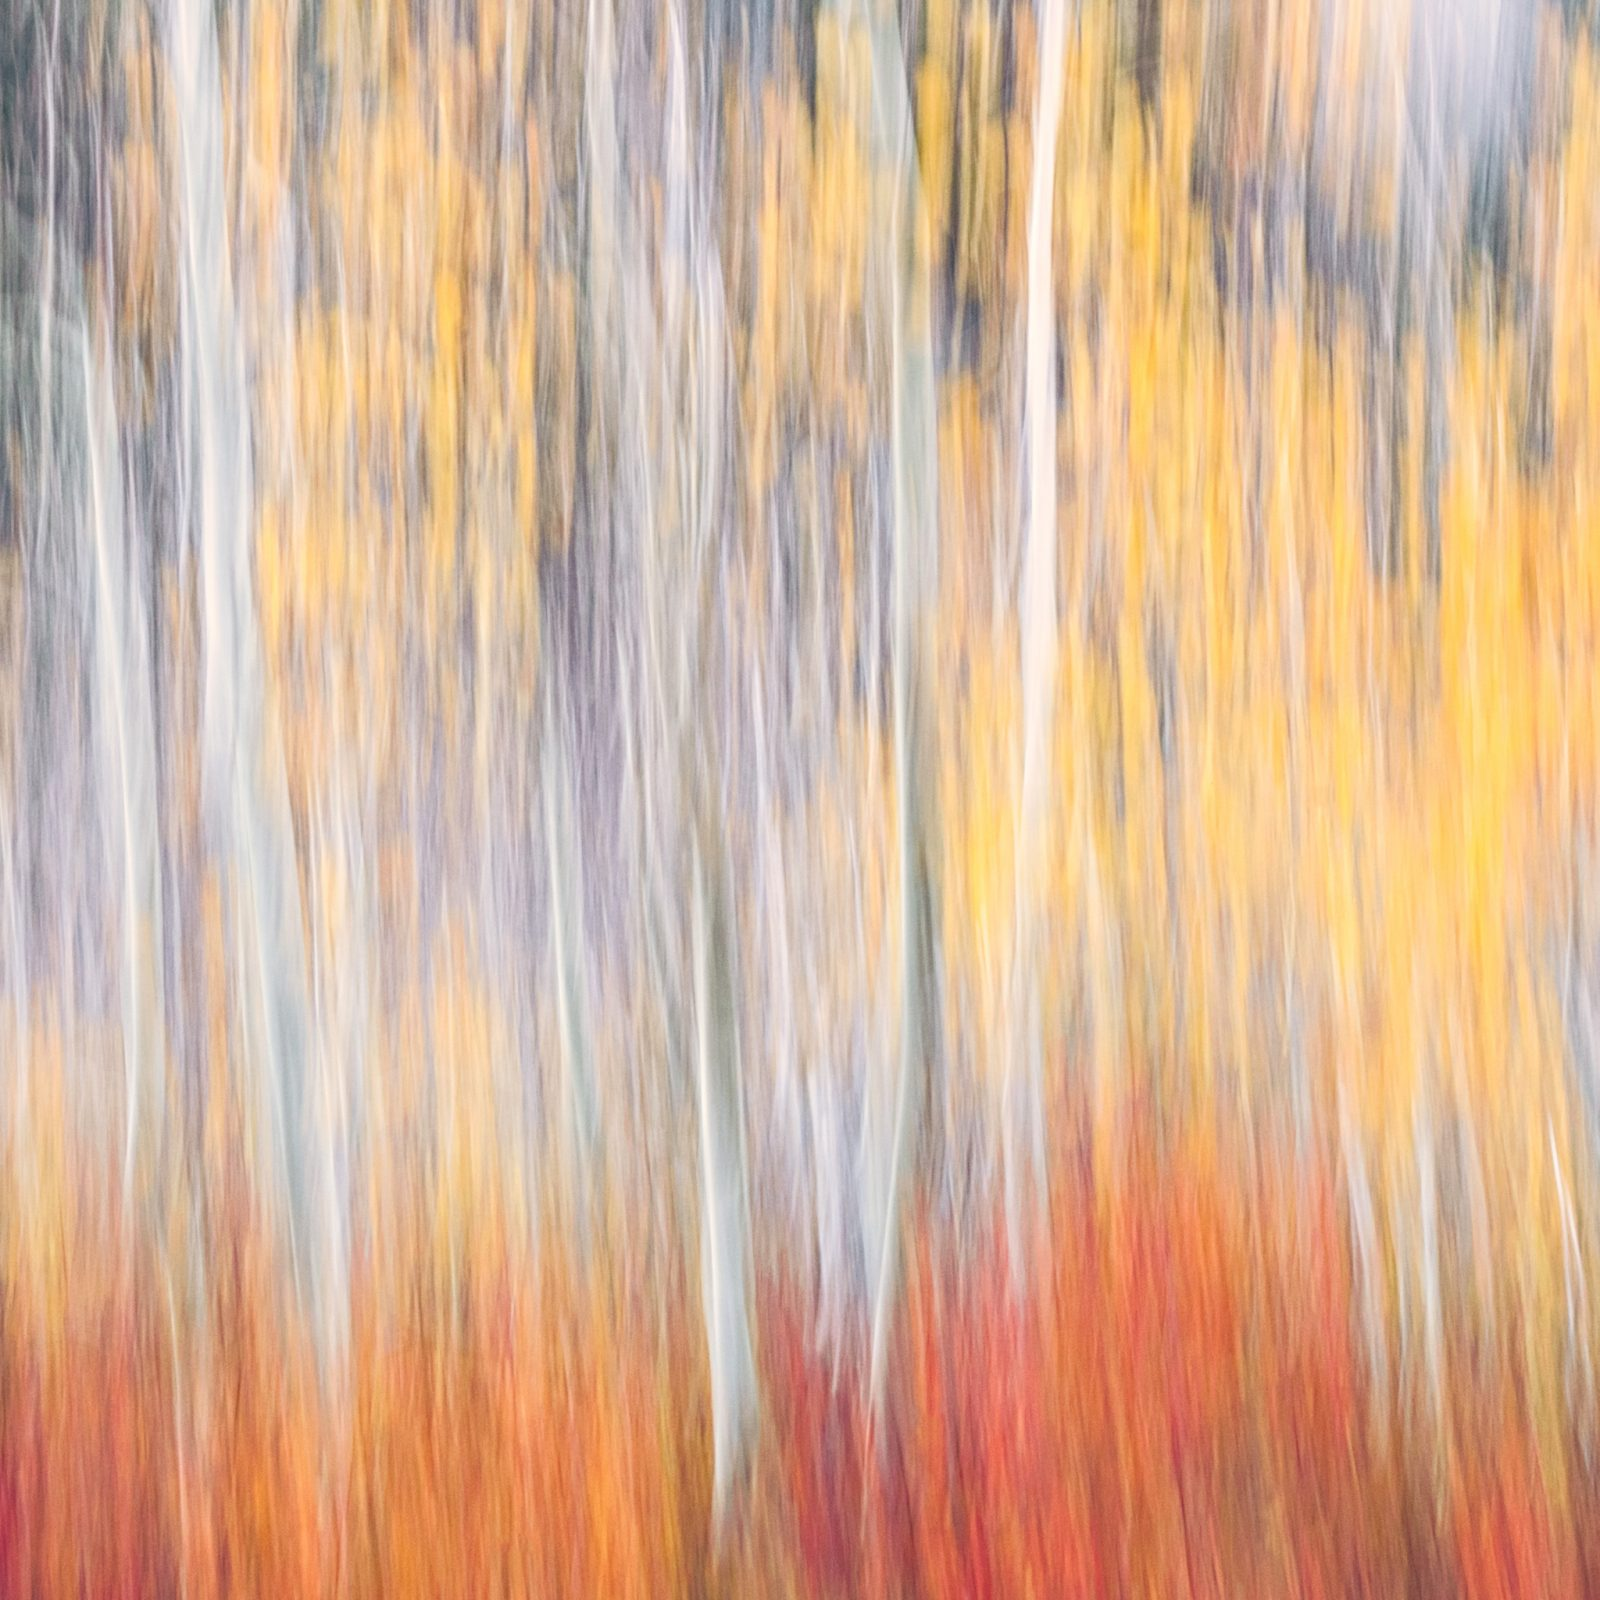 Autumn in Abstract